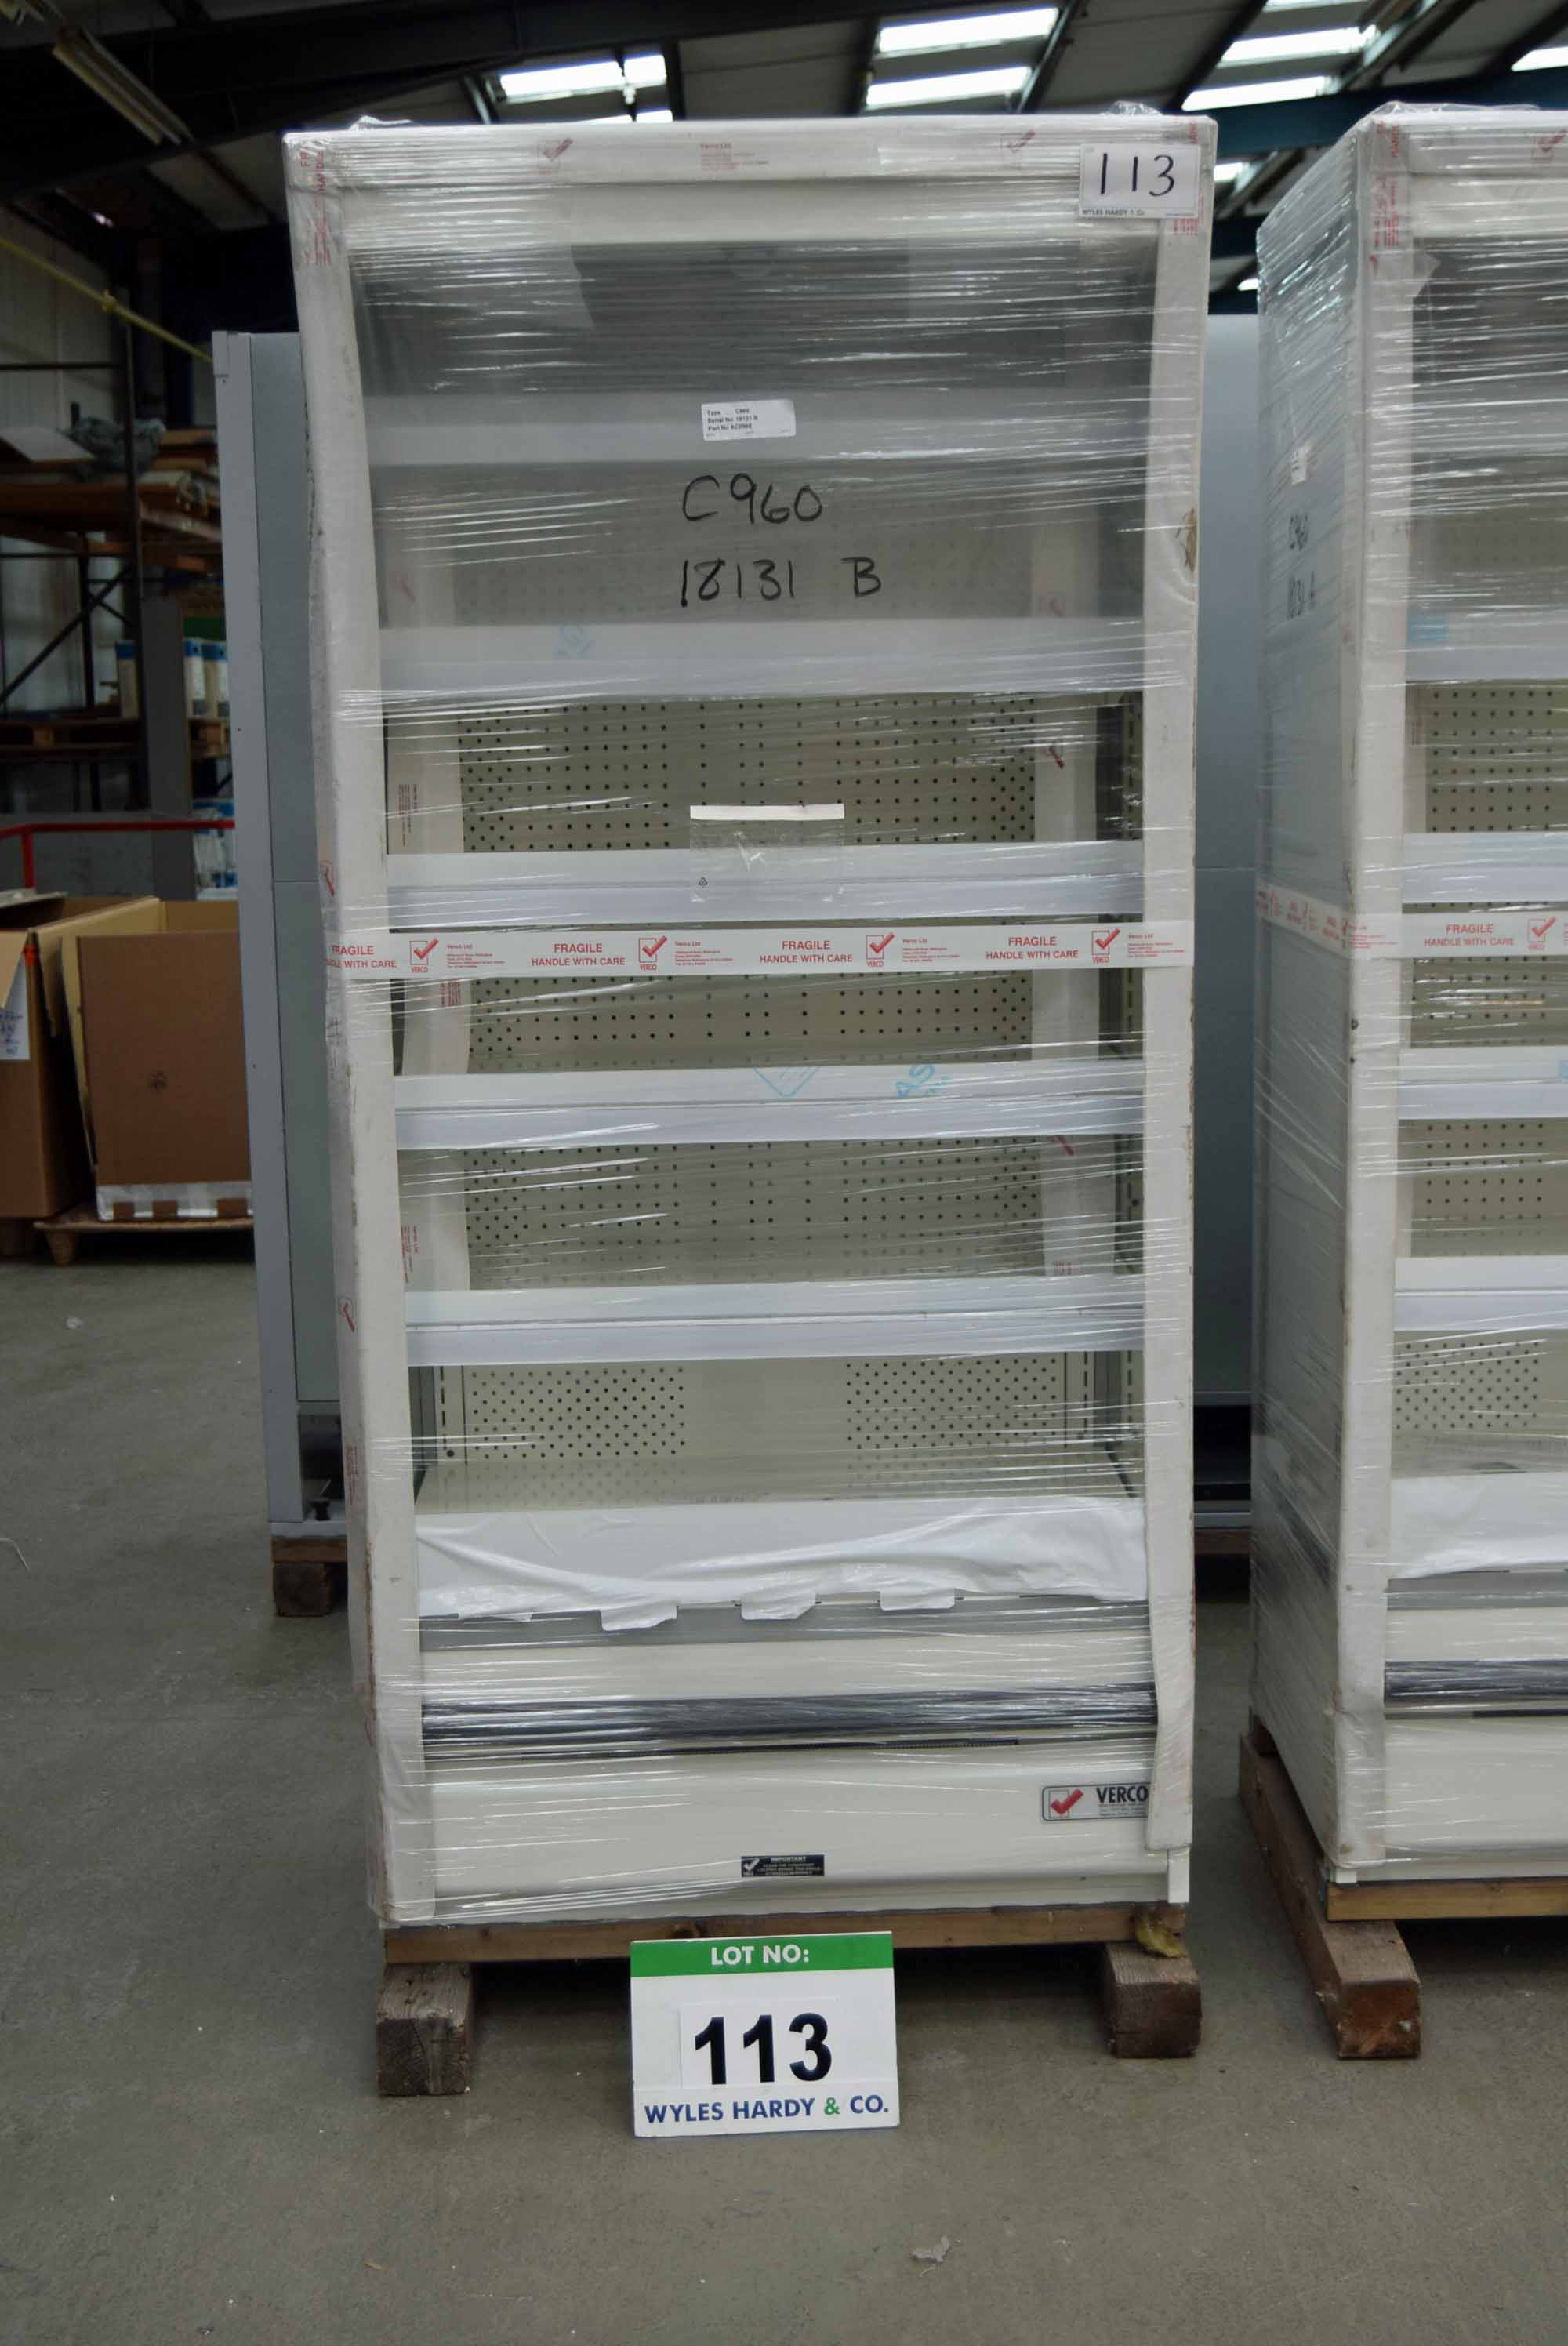 Lot 113 - A VERCO C960 960mm x 2034mm Multideck Chiller Cabinet (Unused) and Shelving Unit (As Photographed)